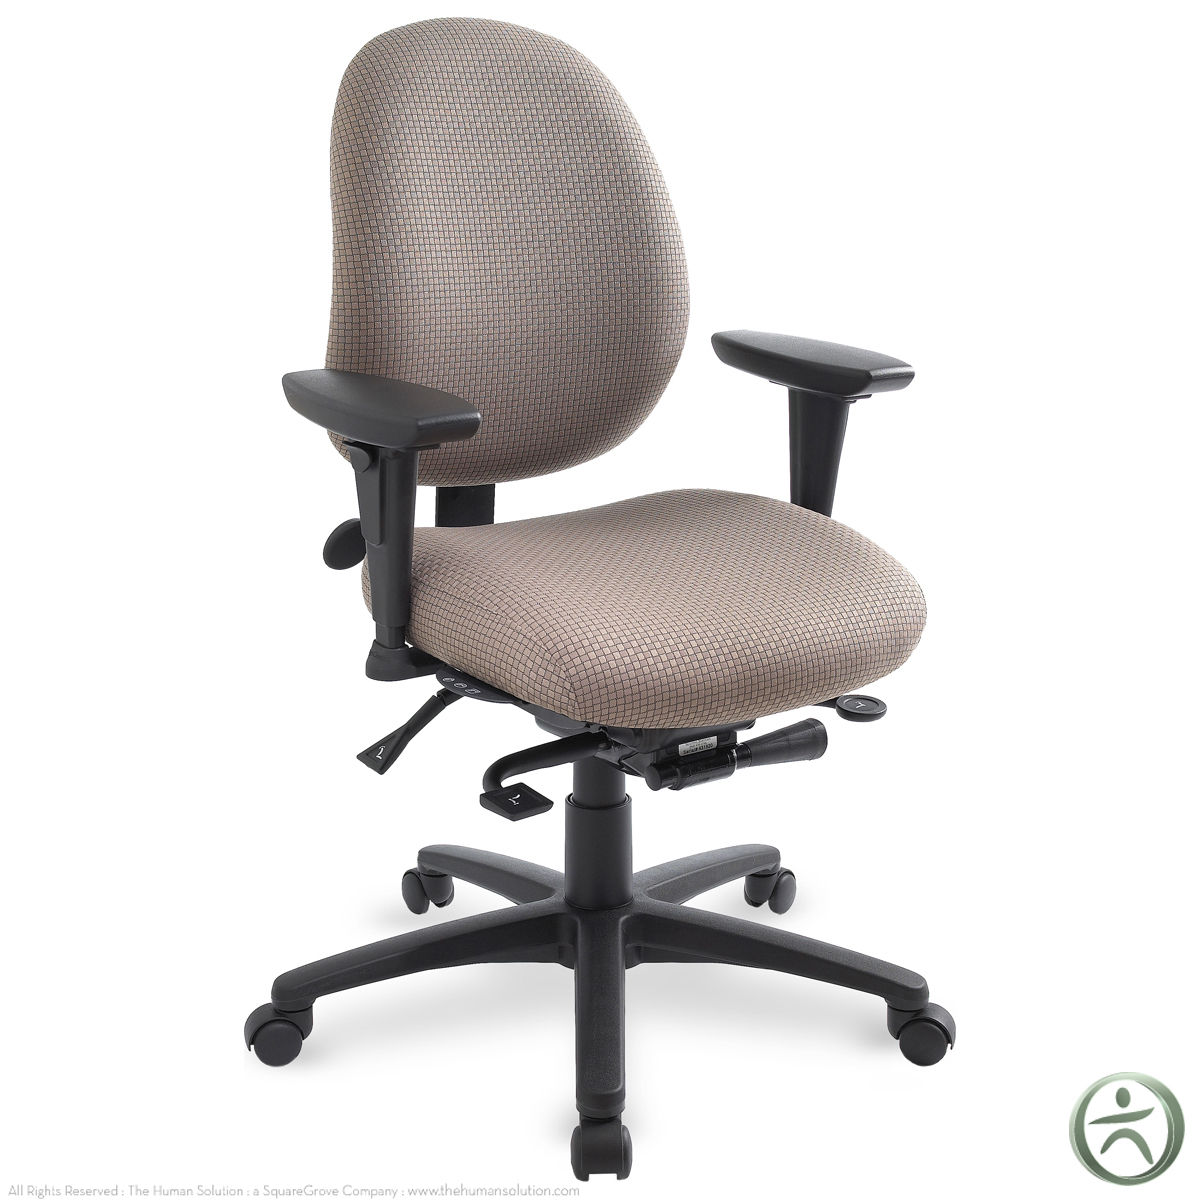 ergoCentric geoCentric Task Chair  Shop ergoCentric Chairs